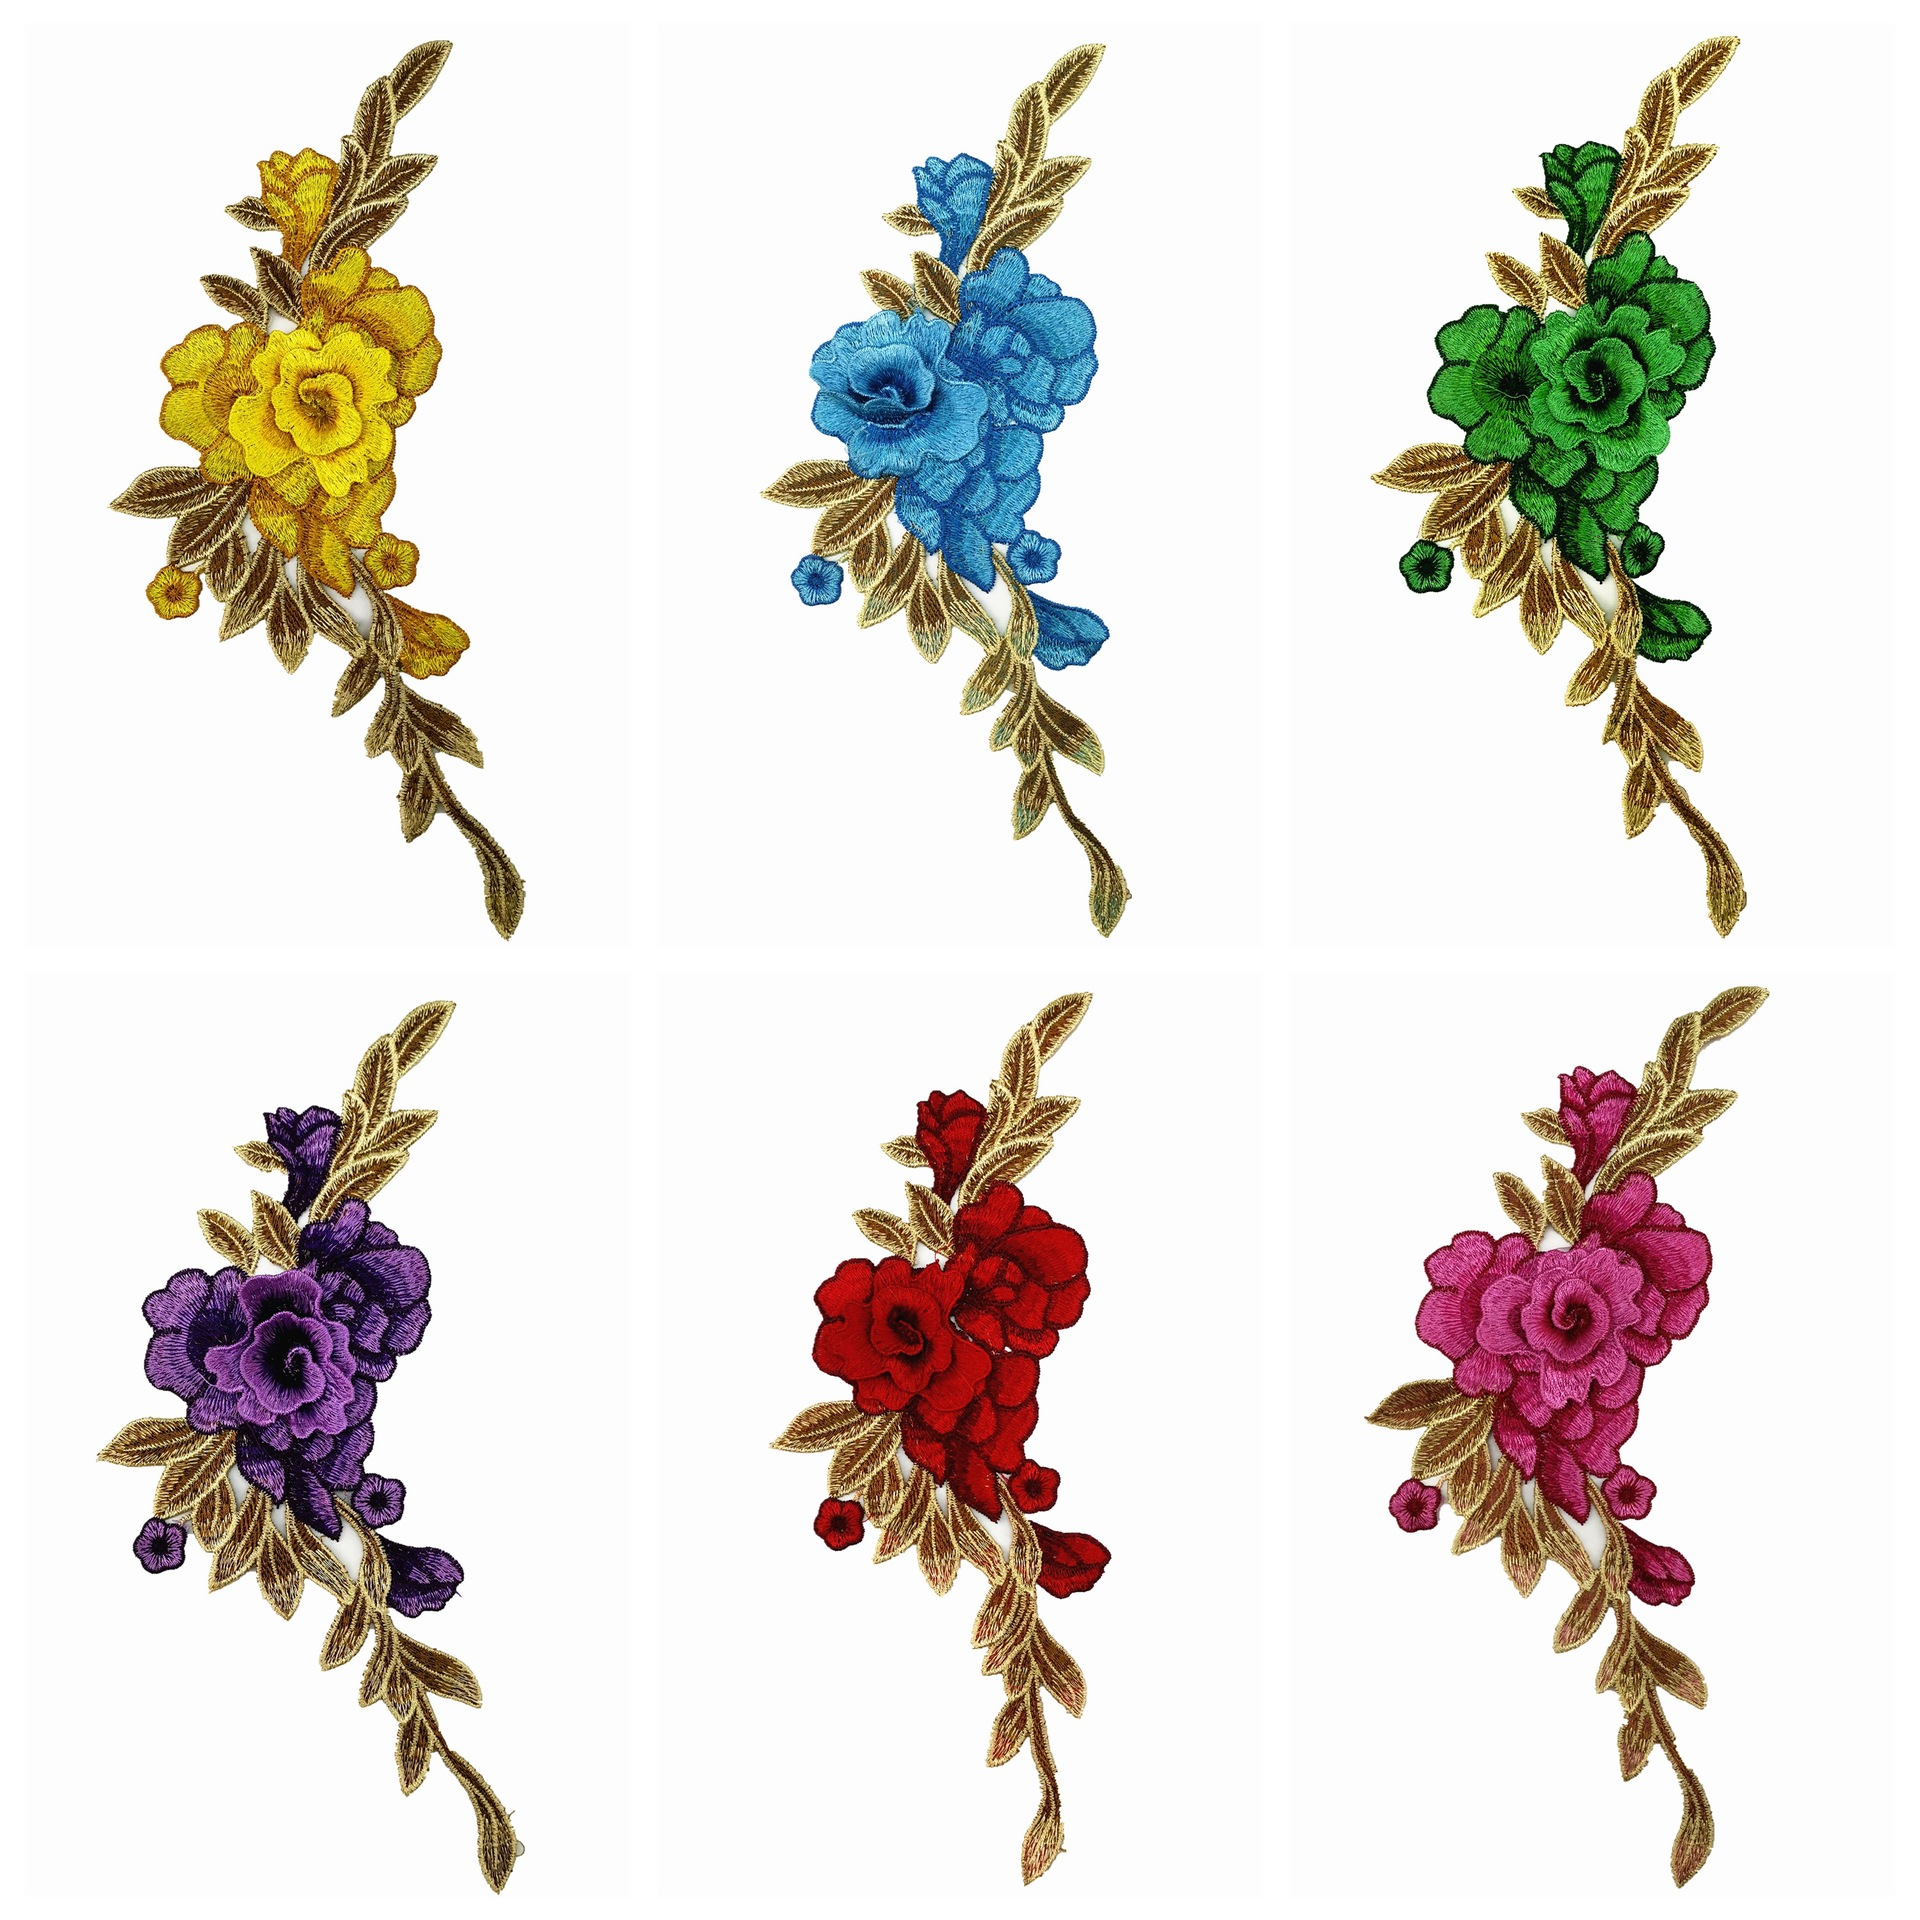 Fashion DIY Applique Water Soluble Embroidery  Costume Decoration Dimensional Colorful Neckband Applique Accessories Patch